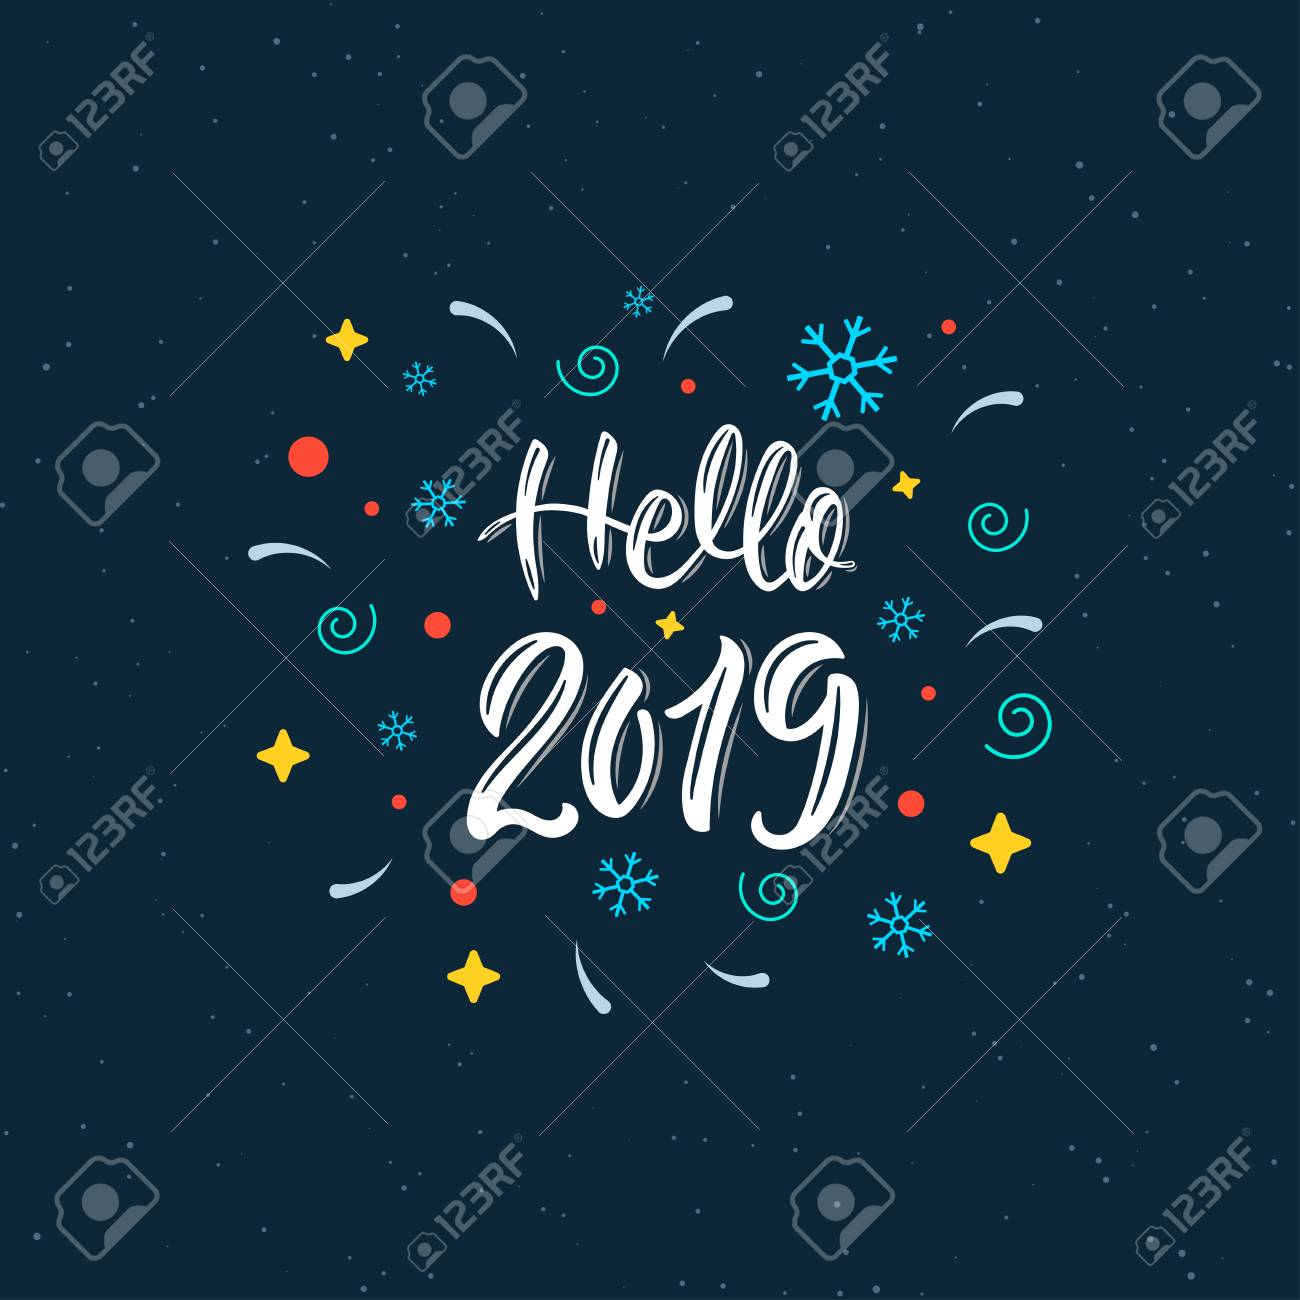 Hello 2019 Trendy hand lettering quote with decorative elements, fashion graphics, art print for posters and greeting cards design. Calligraphic quote in white ink. Vector illustration - 110505236